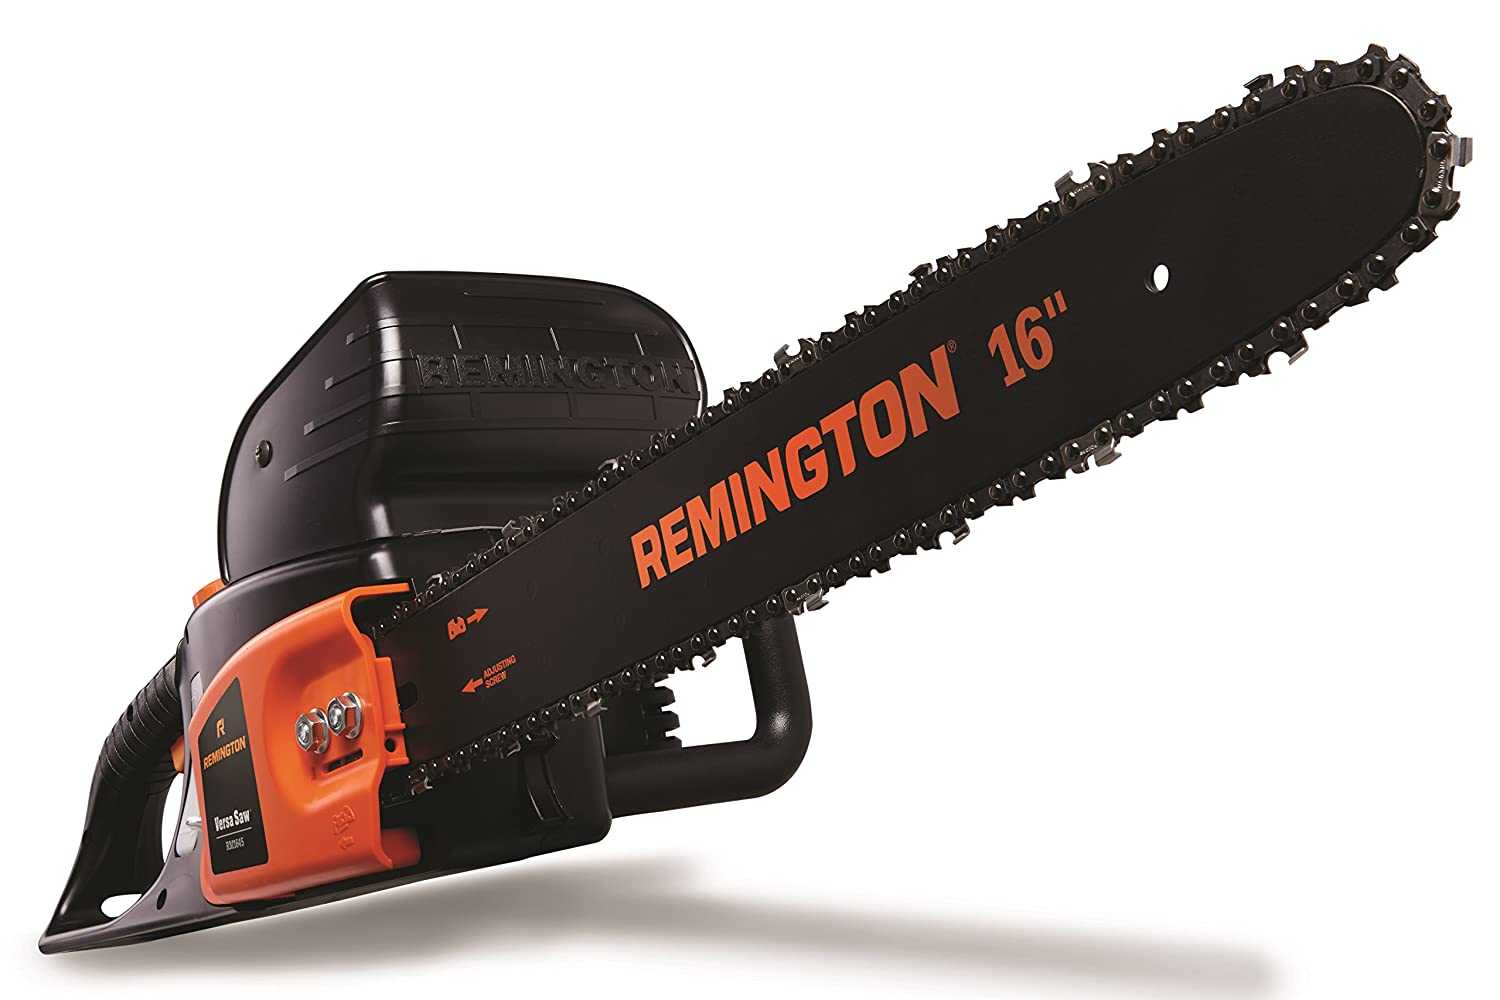 Amazon remington rm1645 versa saw 12 amp 16 inch electric amazon remington rm1645 versa saw 12 amp 16 inch electric chainsaw power chain saws garden outdoor keyboard keysfo